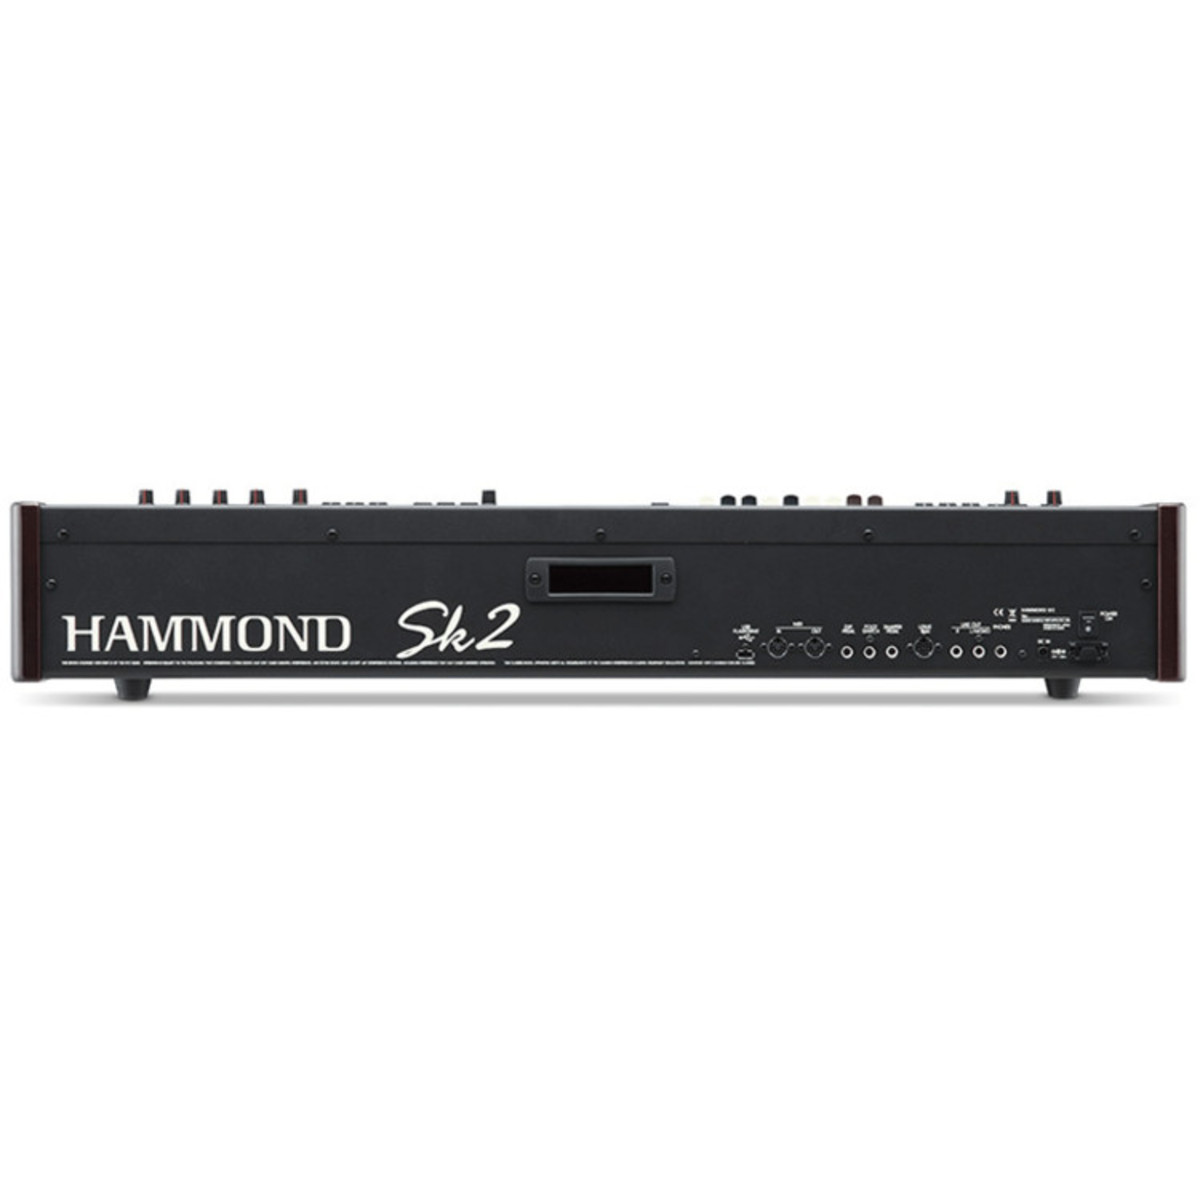 disc hammond sk 2 twin 61 key stage keyboard at gear4music. Black Bedroom Furniture Sets. Home Design Ideas